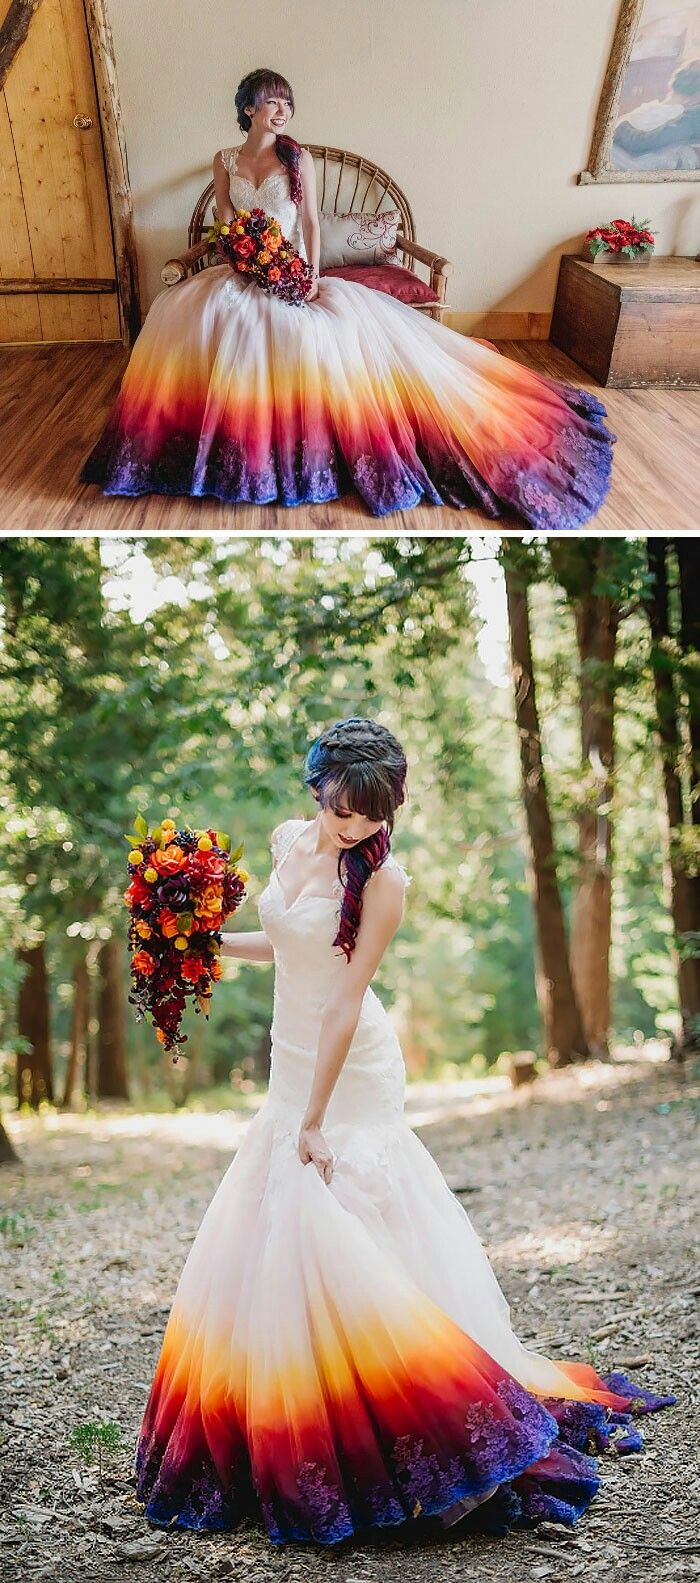 Beautiful!   http://static.boredpanda.com/blog/wp-content/uploads/2016/09/dip-dye-wedding-dress-trend-1-57cdba6b6f80e__700.jpg